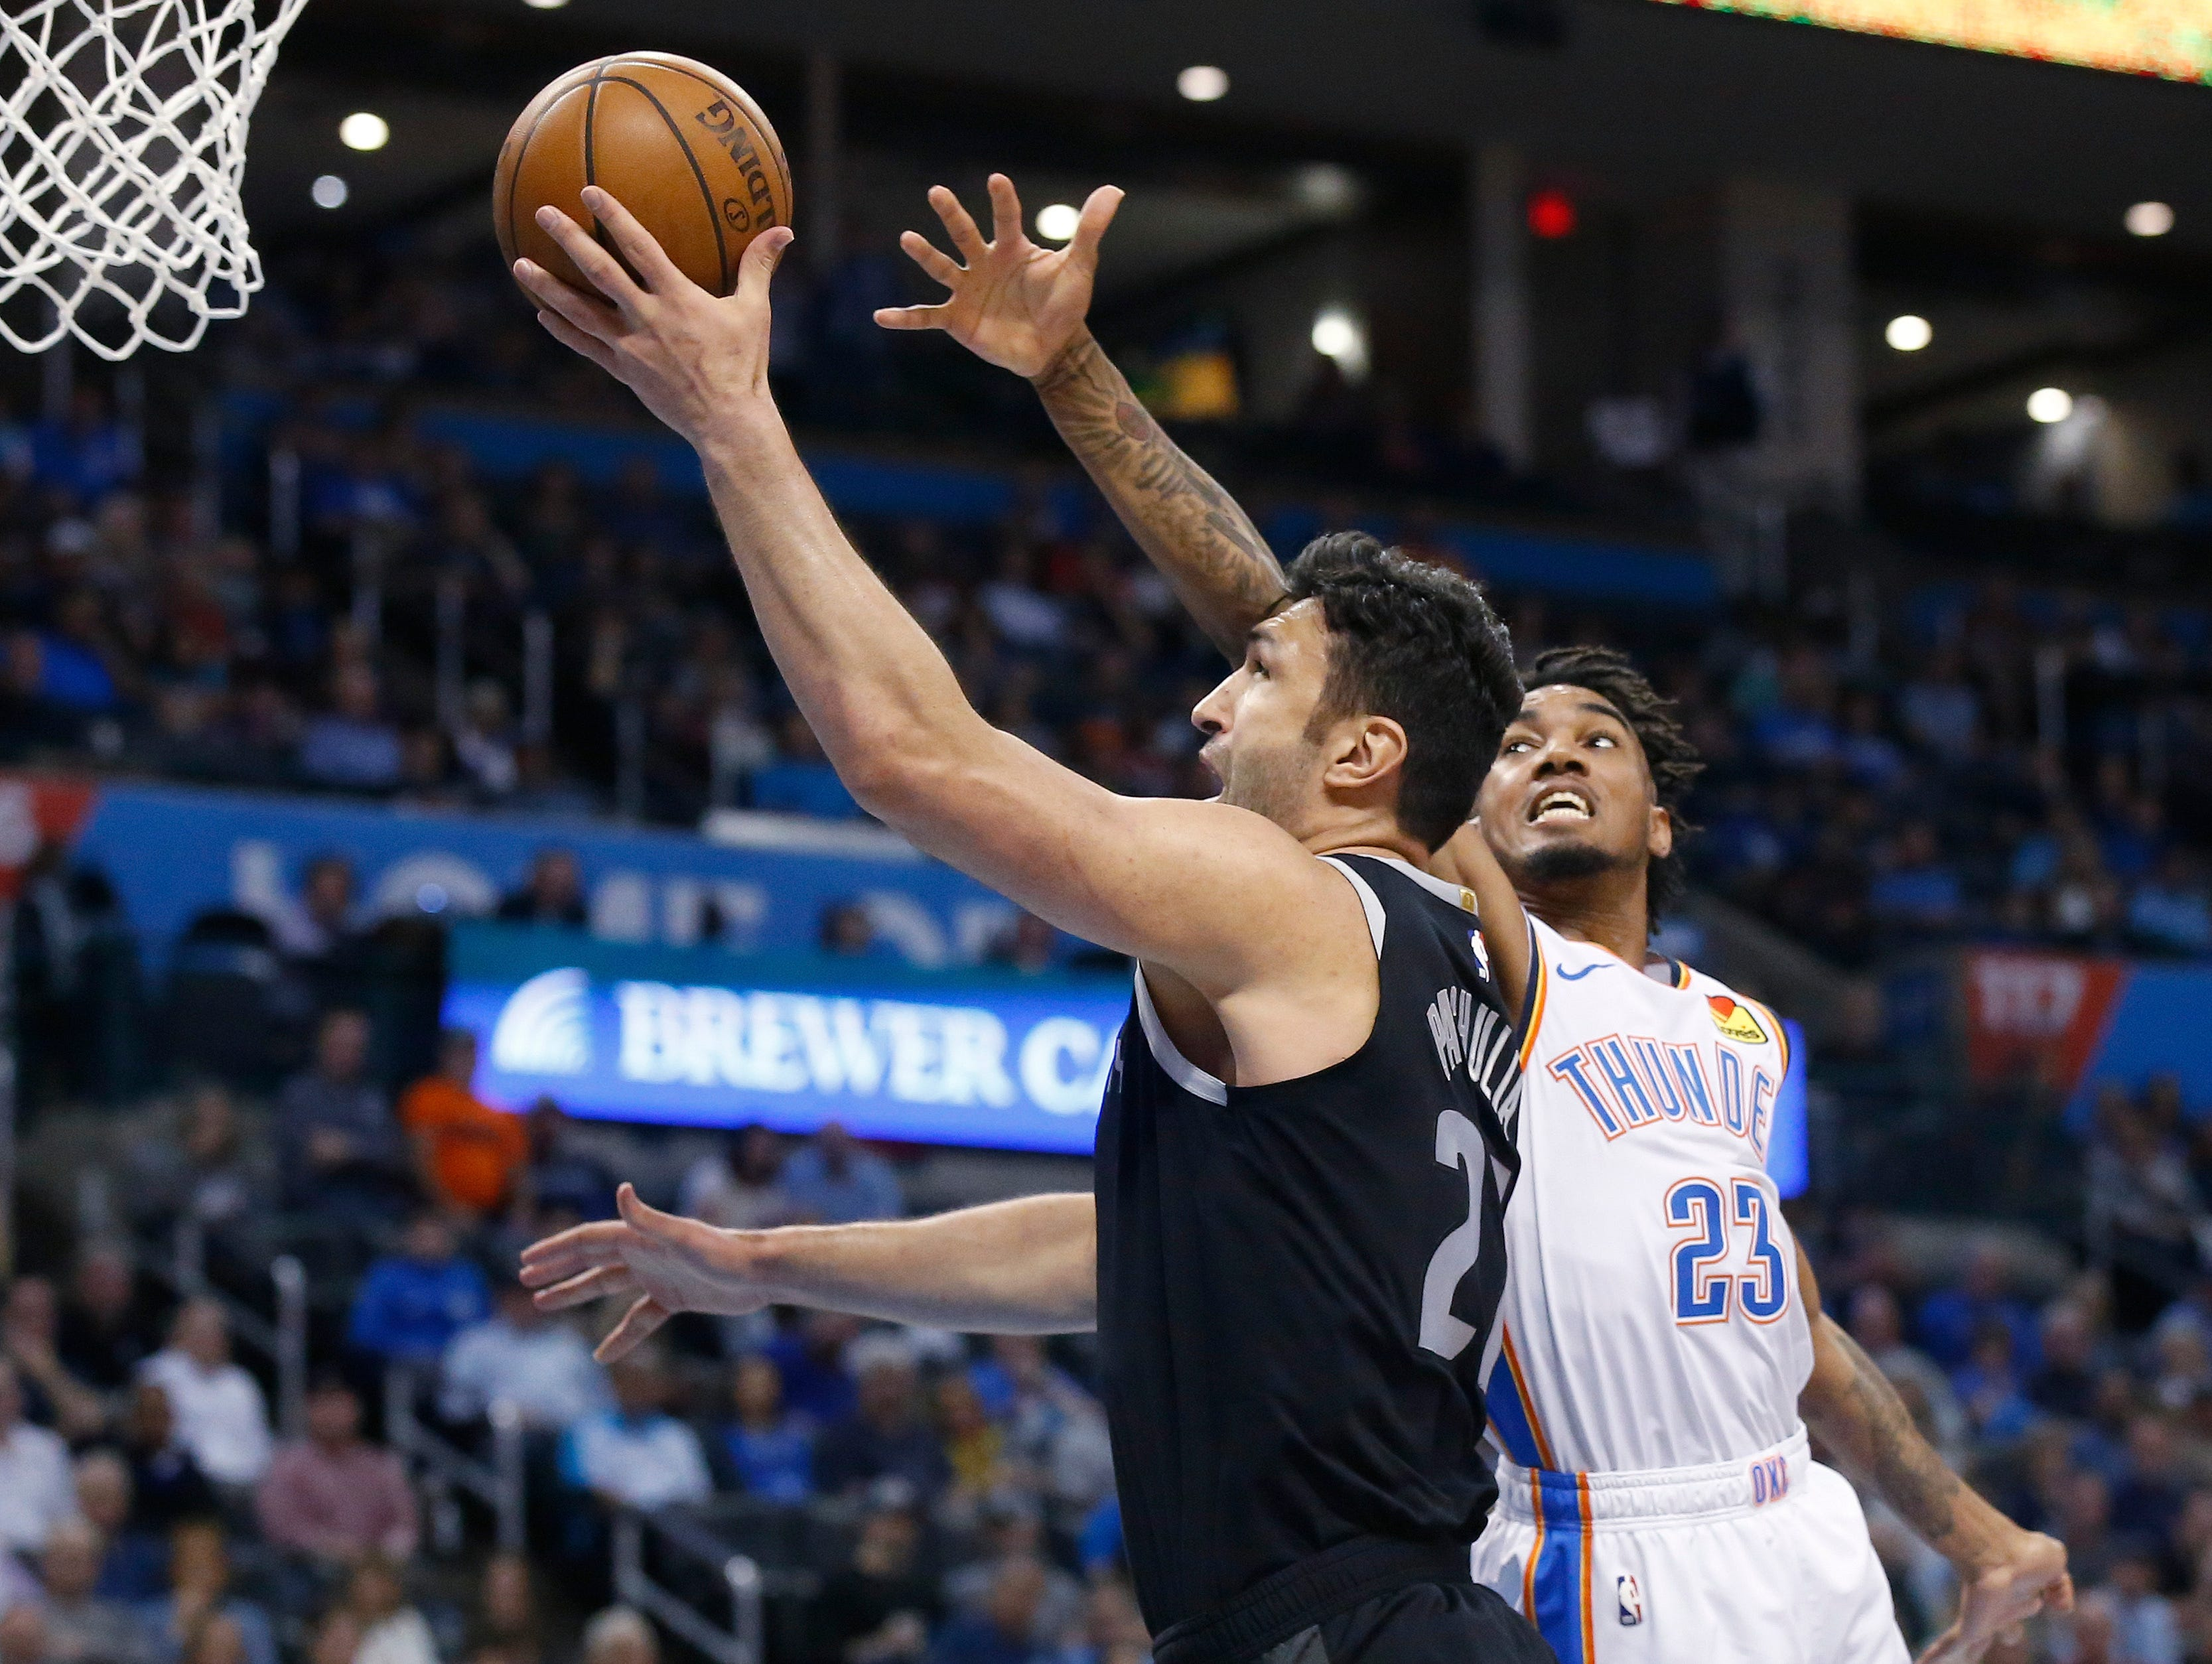 Detroit Pistons center Zaza Pachulia, left, shoots in front of Oklahoma City Thunder guard Terrance Ferguson (23) during the first half.